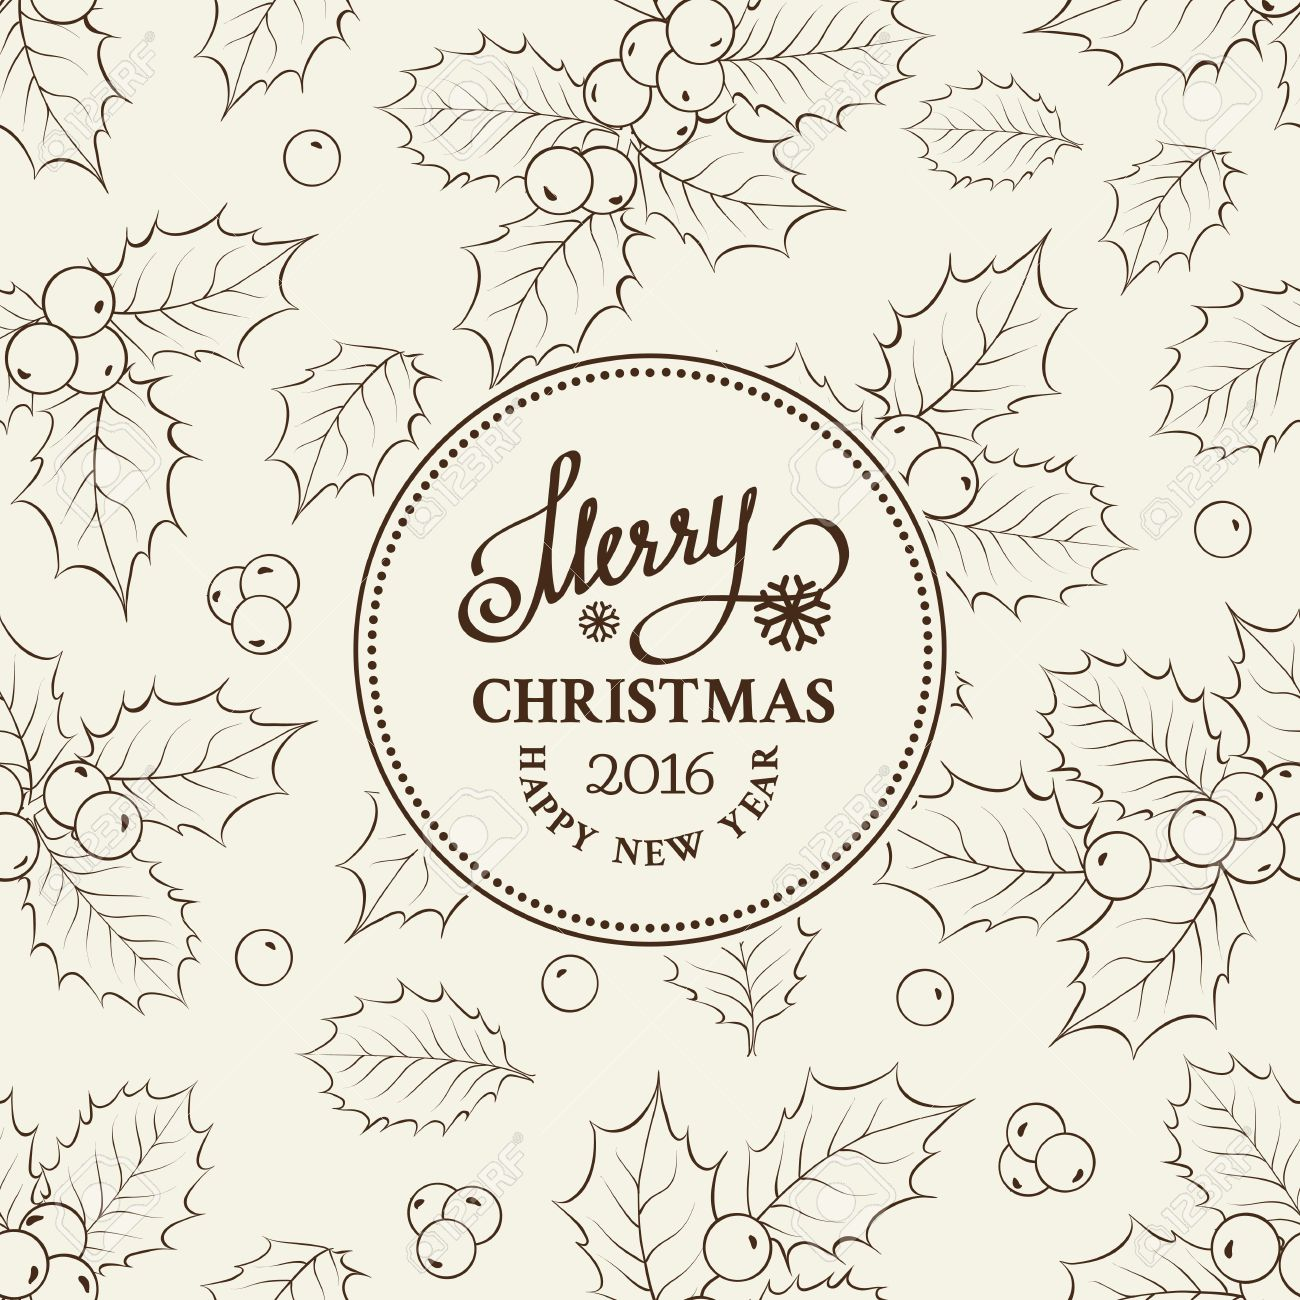 Christmas card with text mistletoe holiday vintage label card christmas card with text mistletoe holiday vintage label card invitation template for your holiday buycottarizona Image collections